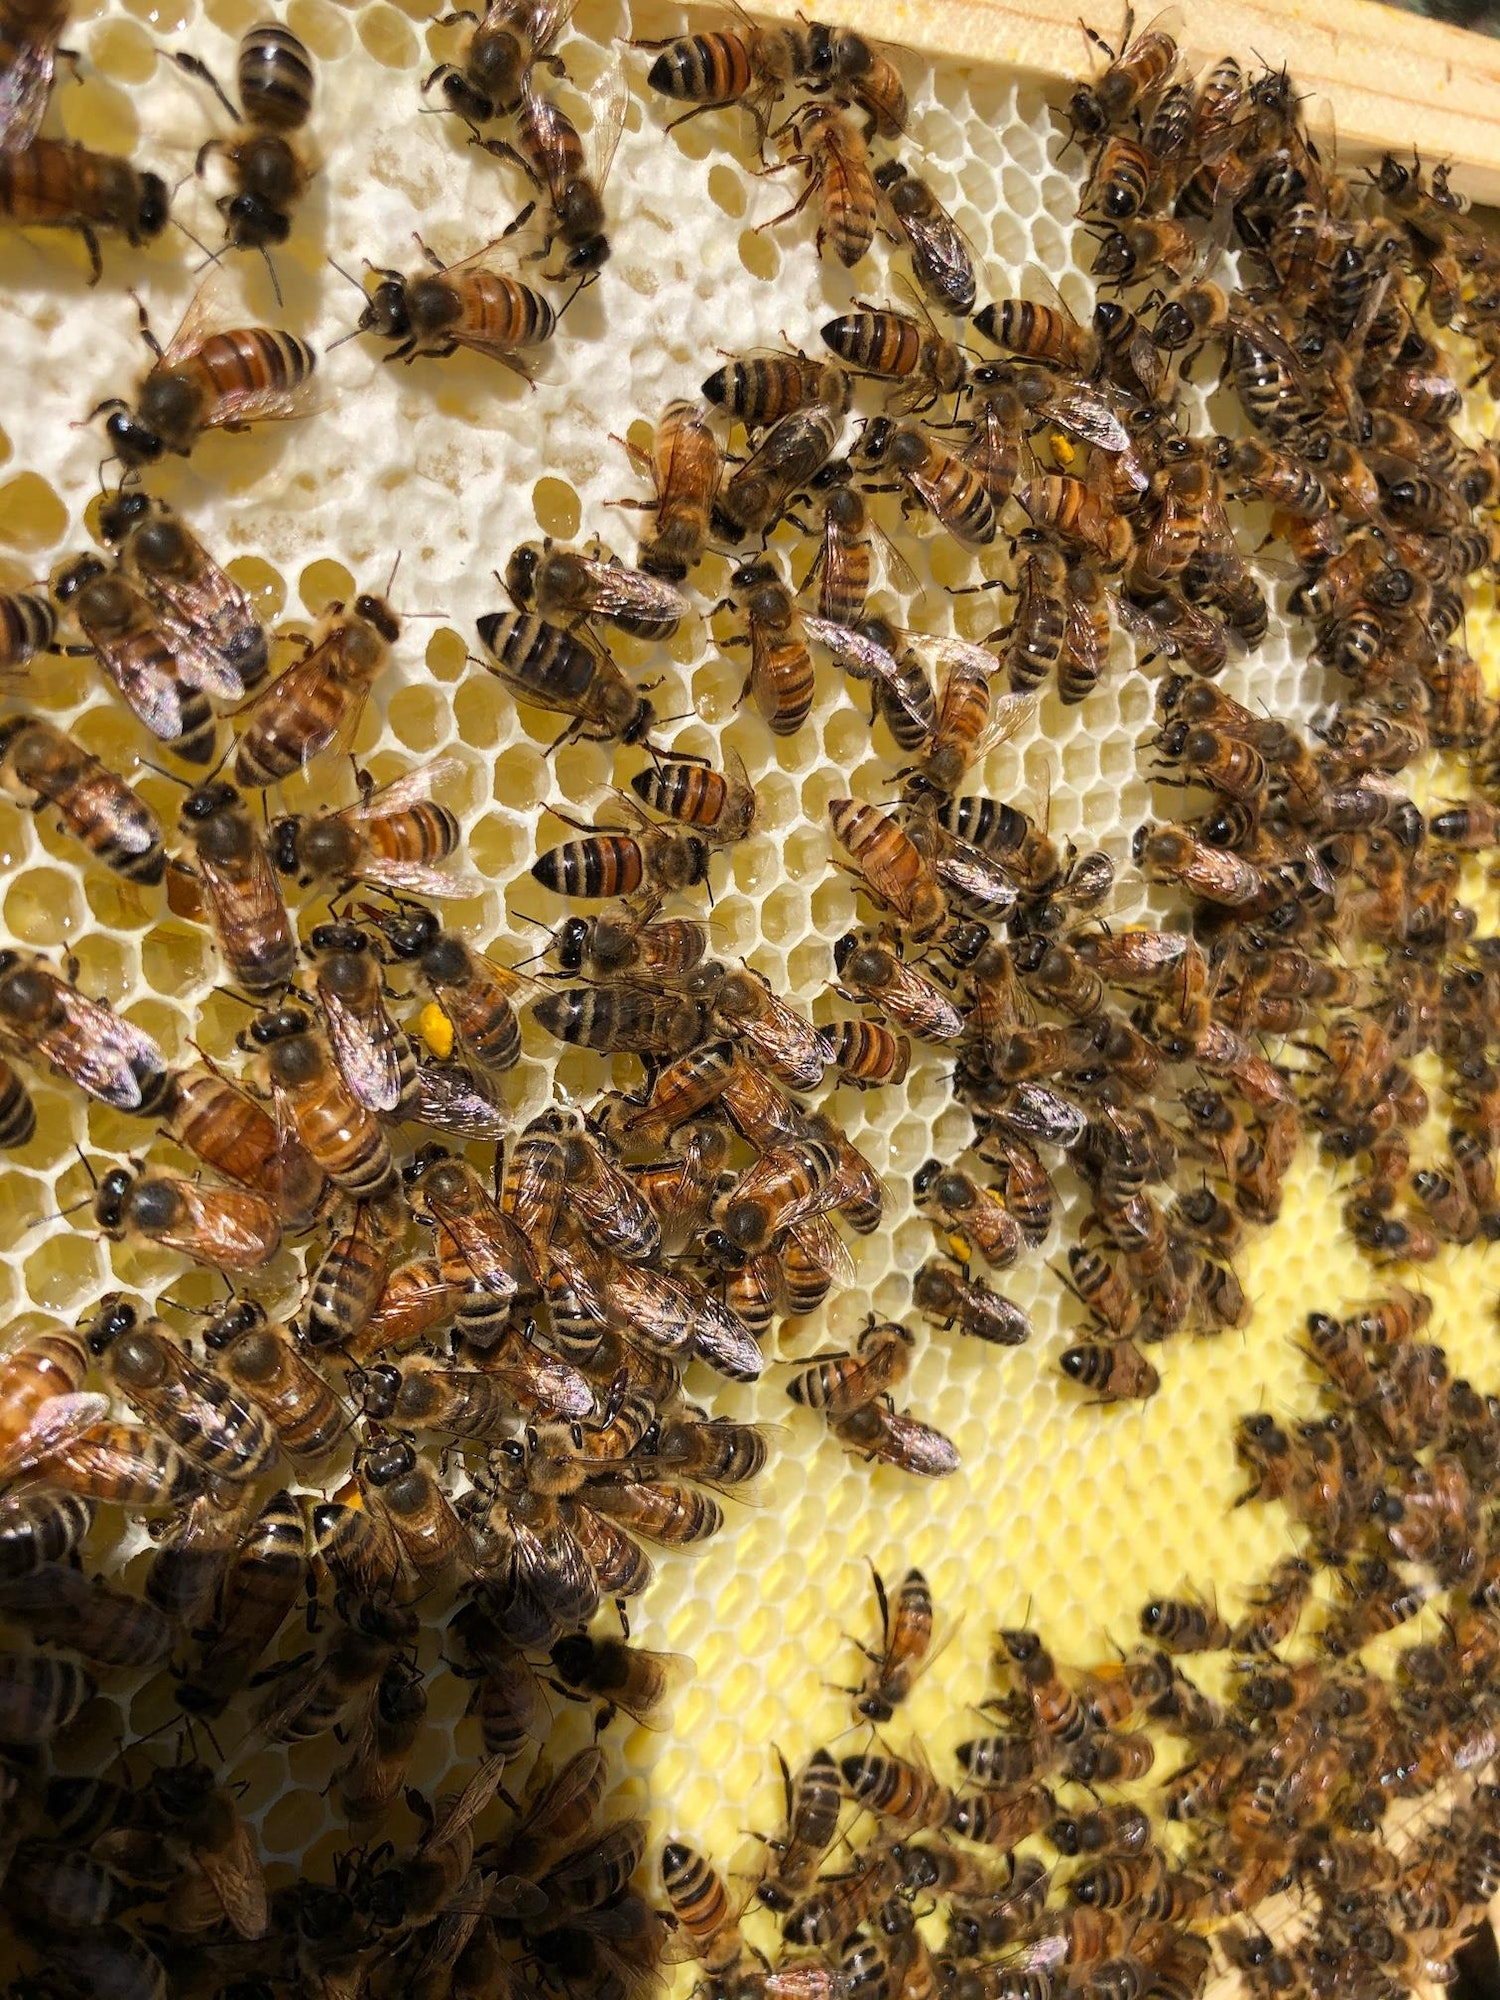 May contain: honey bee, animal, invertebrate, insect, bee, apidae, and food